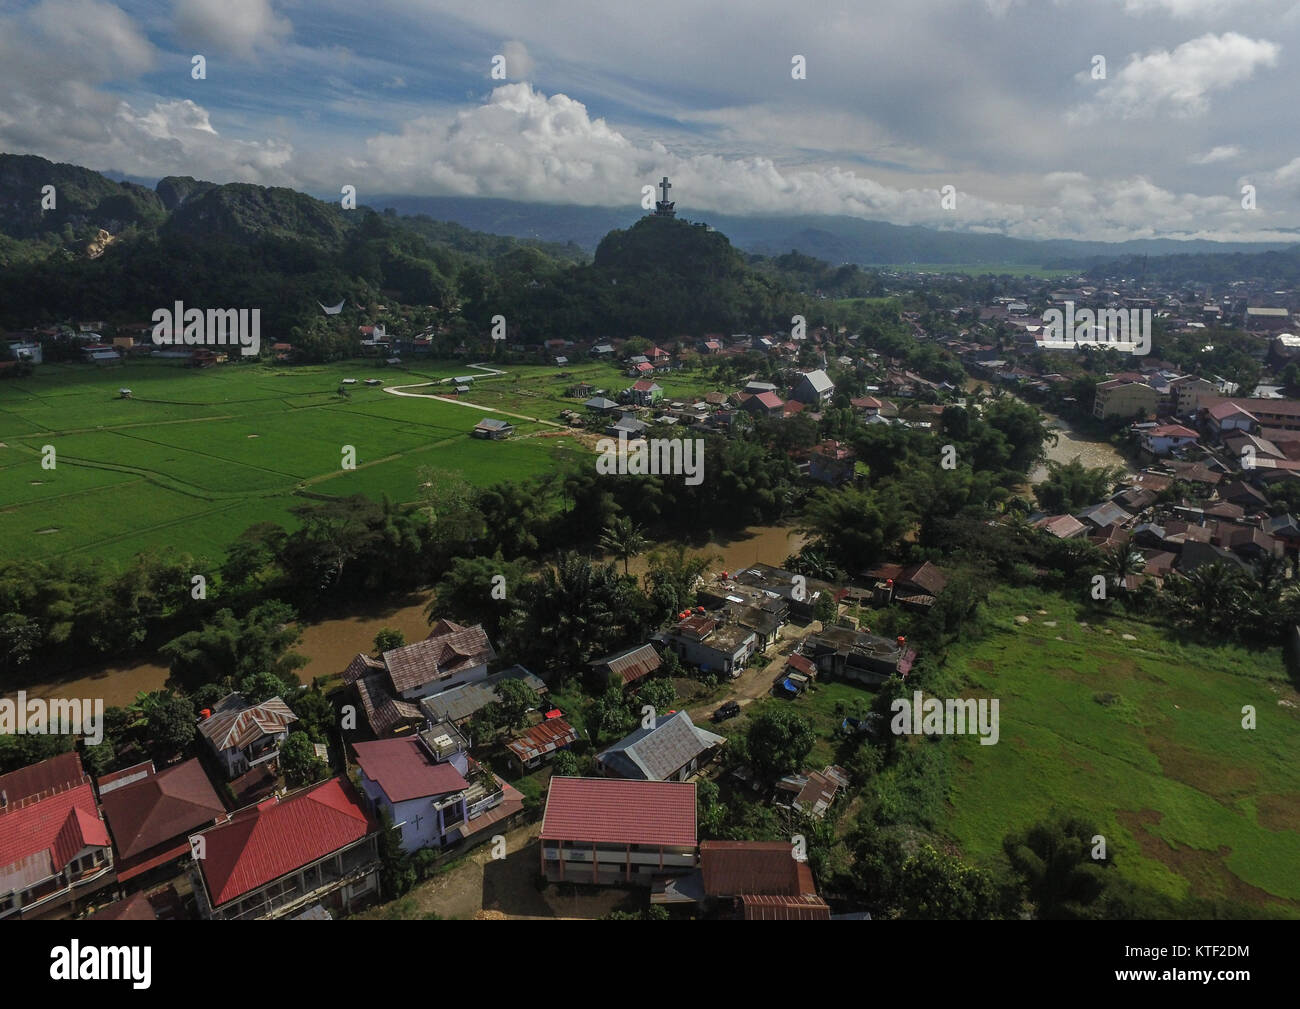 Gigantic Christianity cross in the city of Rantepao in the regency of North Toraja (Toraja Utara) - Indonesia. - Stock Image